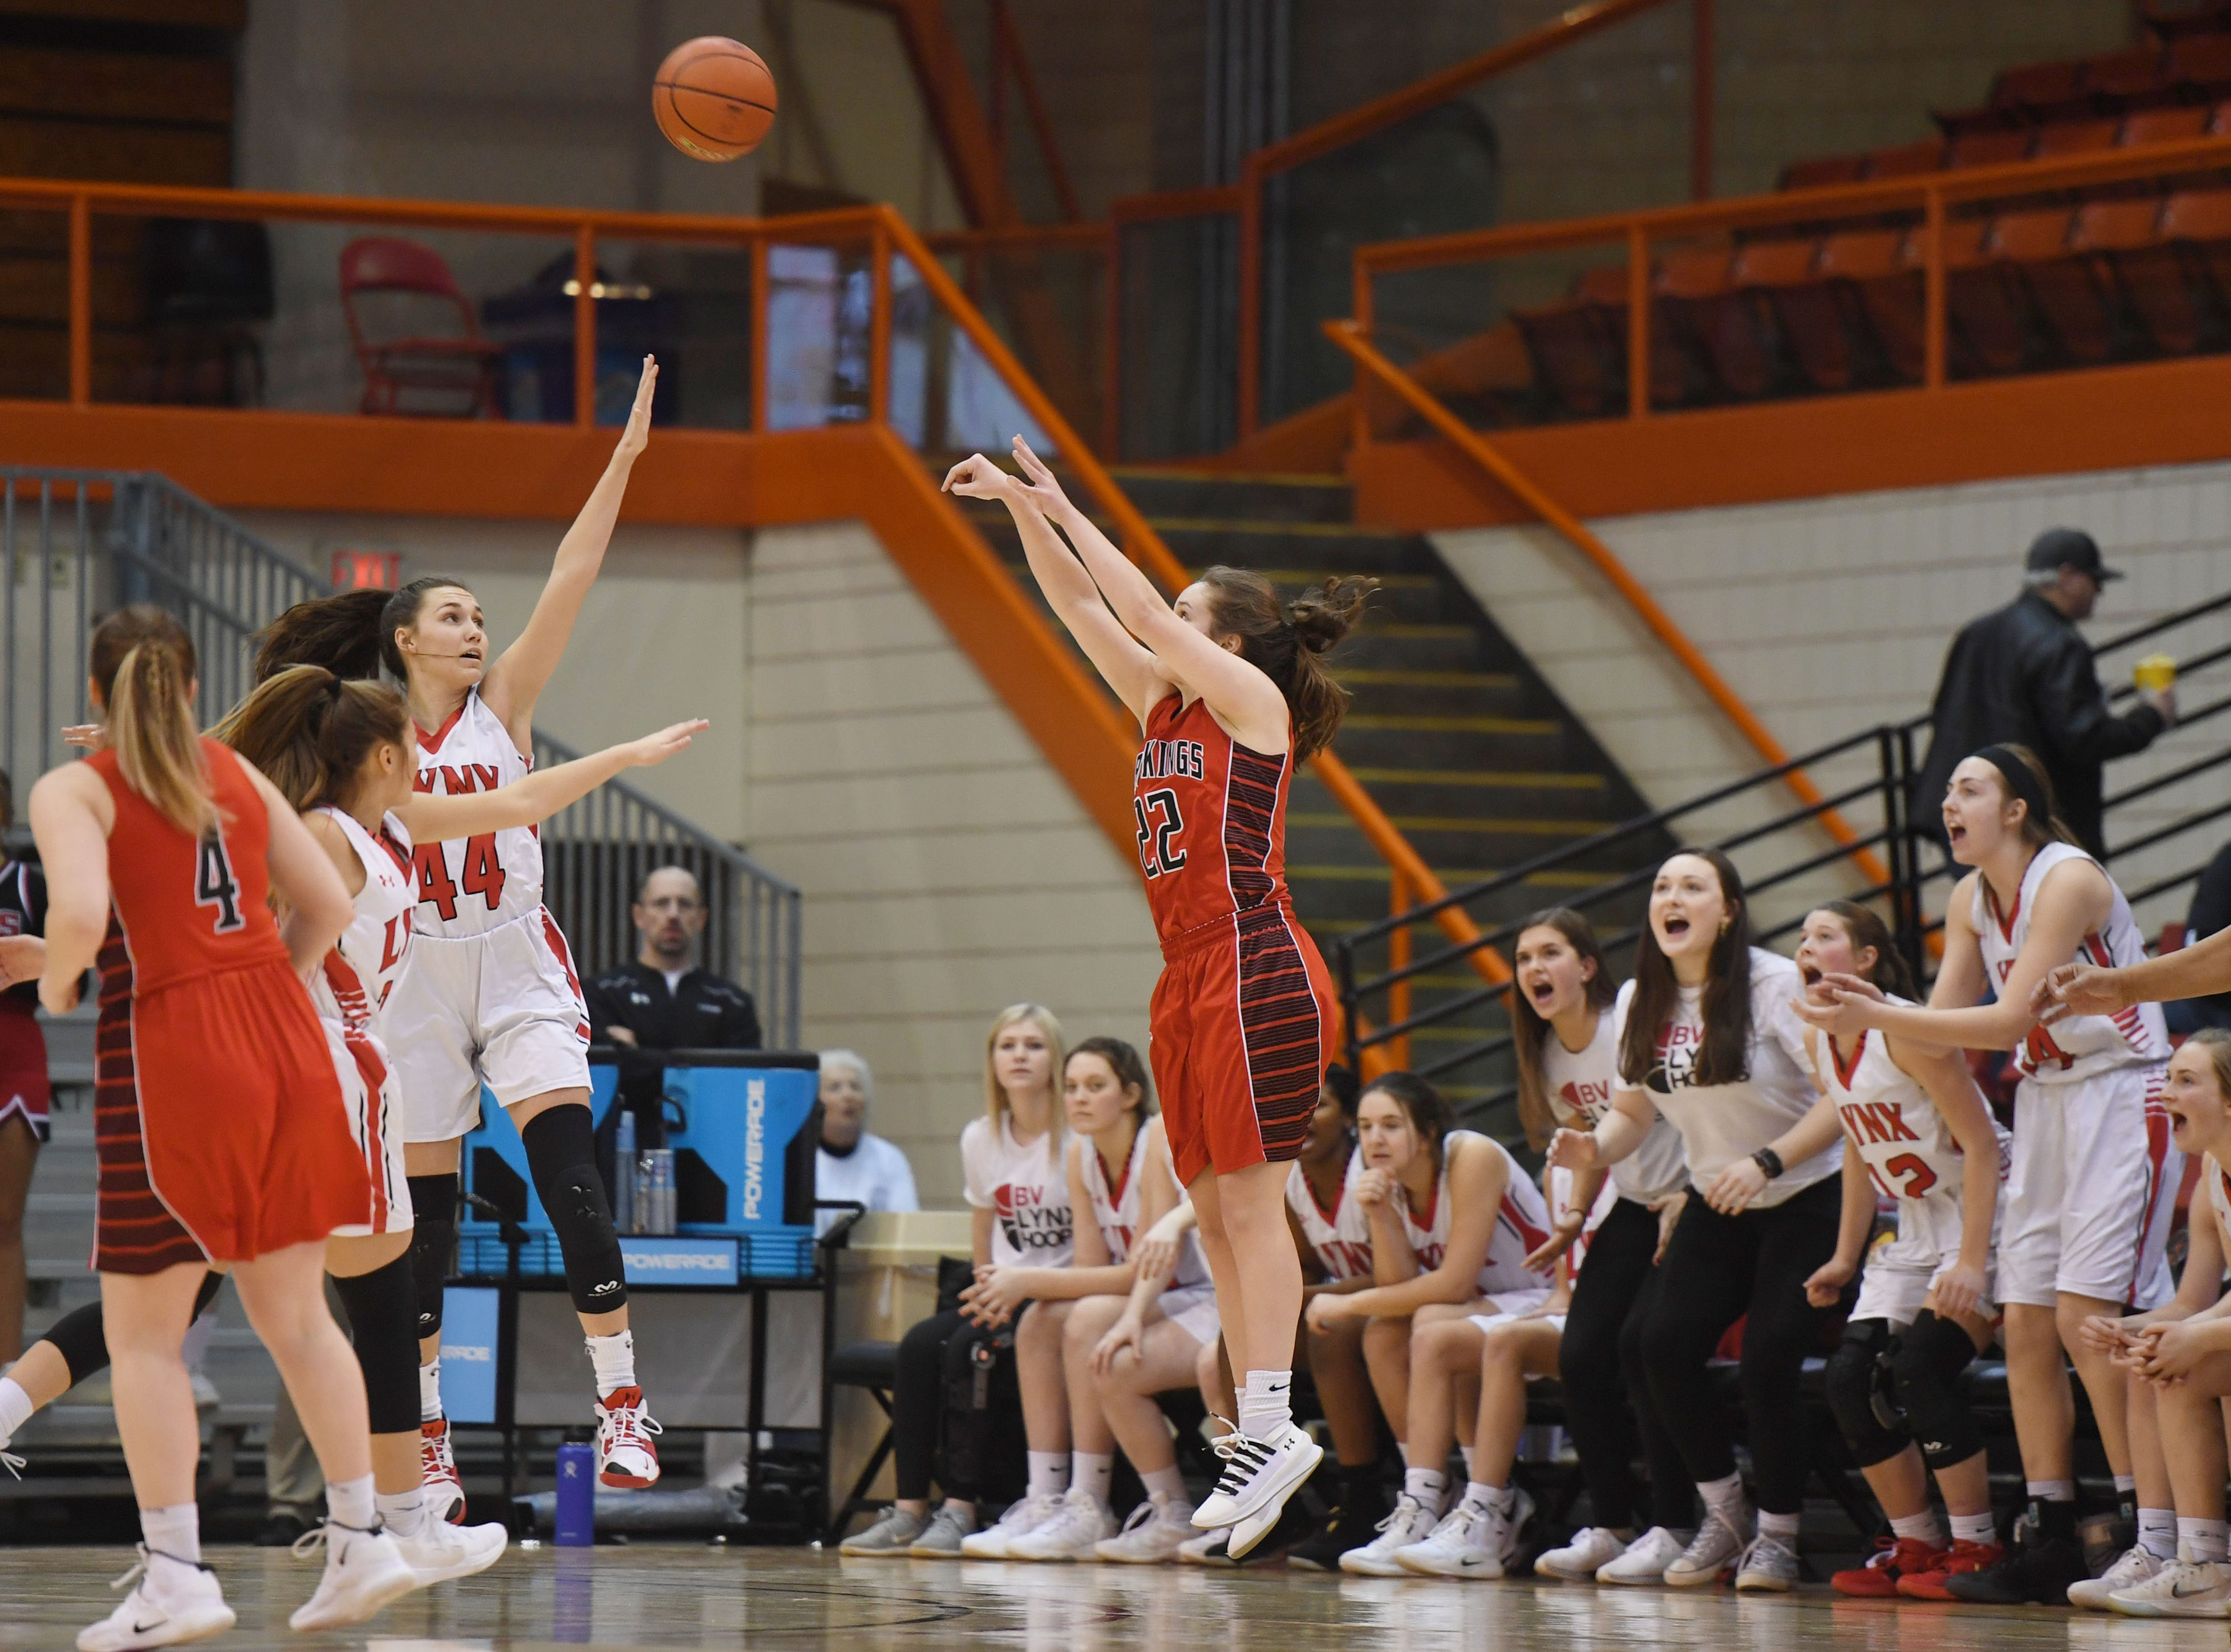 Brandon Valley's Marlie Tekrony takes a shot against Brookings in the Class AA quarterfinals Thursday, March 14, in Rapid City.